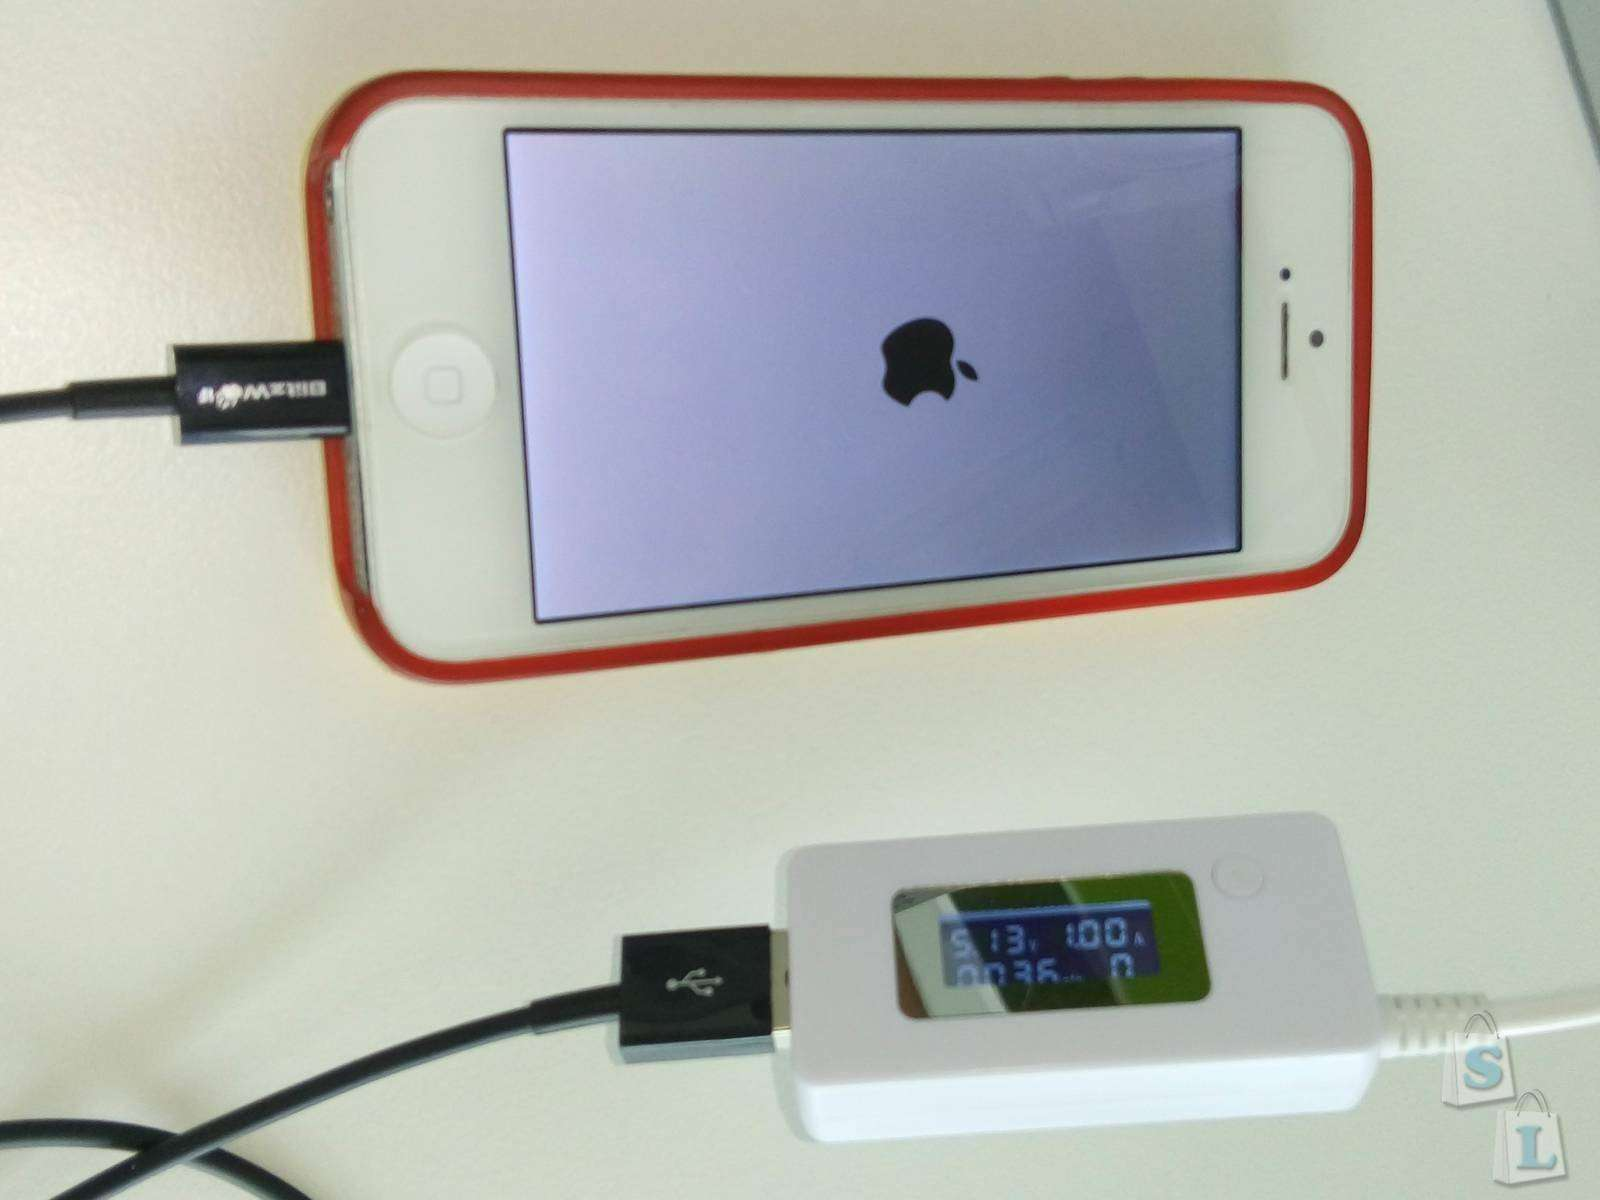 Banggood: Кабель BlitzWolf  USB - Lighting, для Iphone 5-6